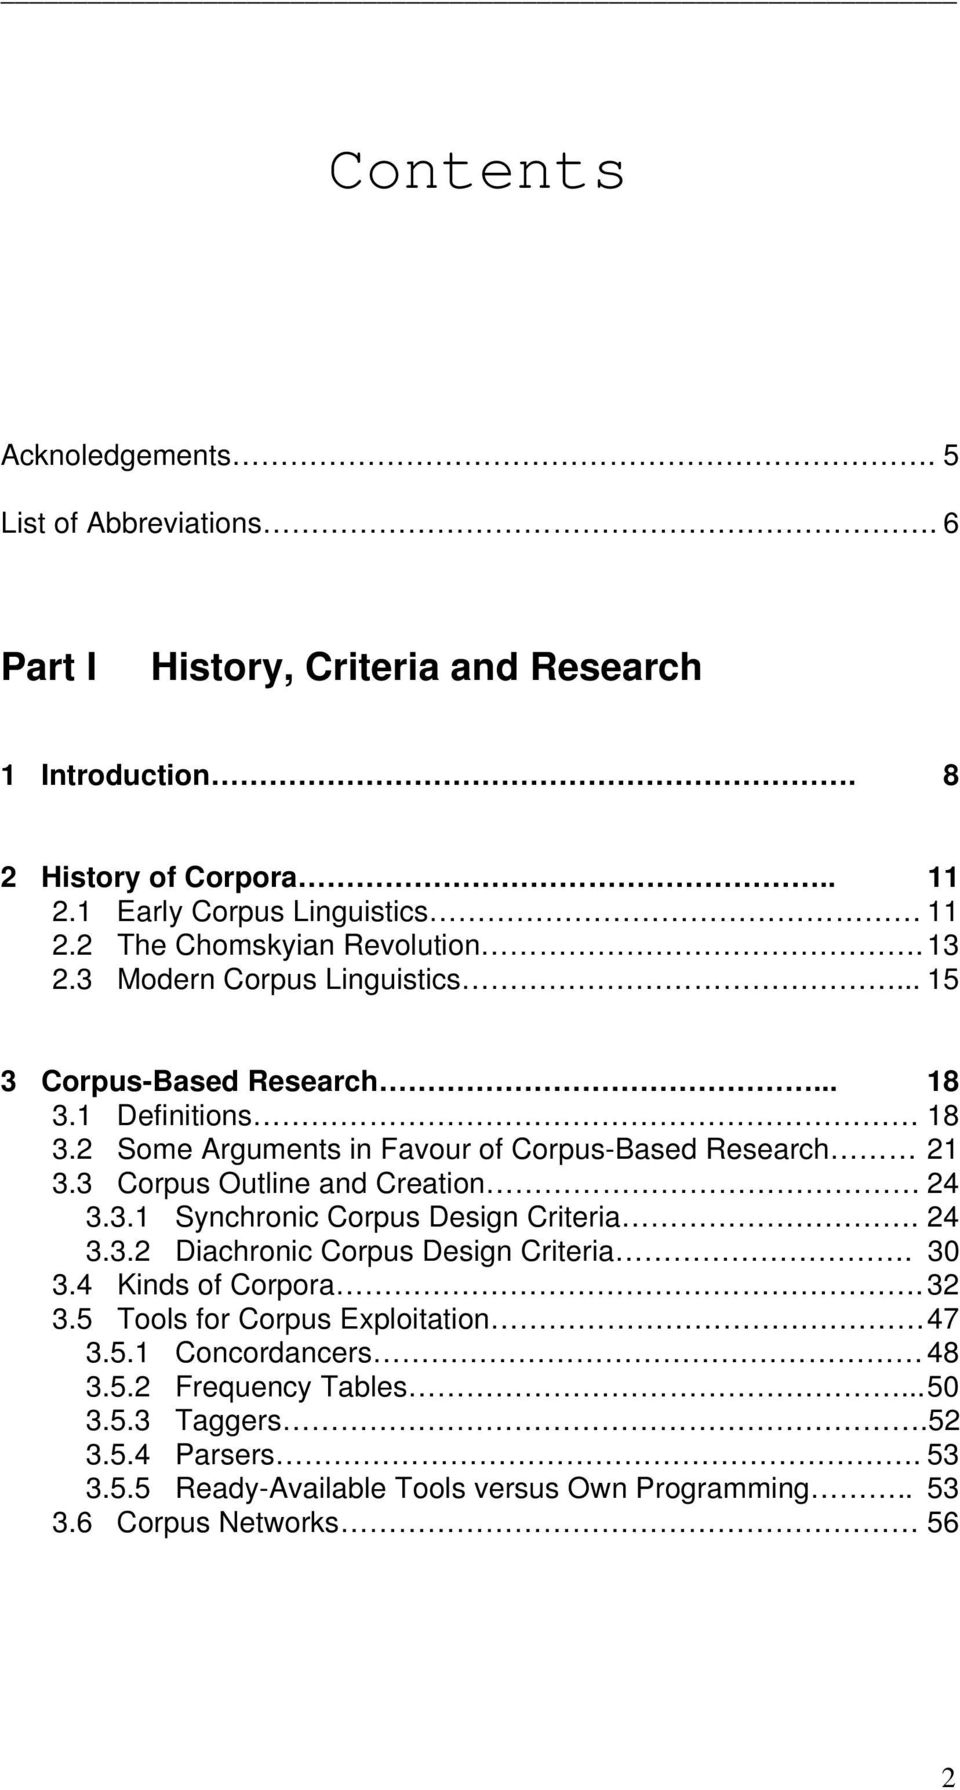 2 Some Arguments in Favour of Corpus-Based Research 21 3.3 Corpus Outline and Creation 24 3.3.1 Synchronic Corpus Design Criteria. 24 3.3.2 Diachronic Corpus Design Criteria.